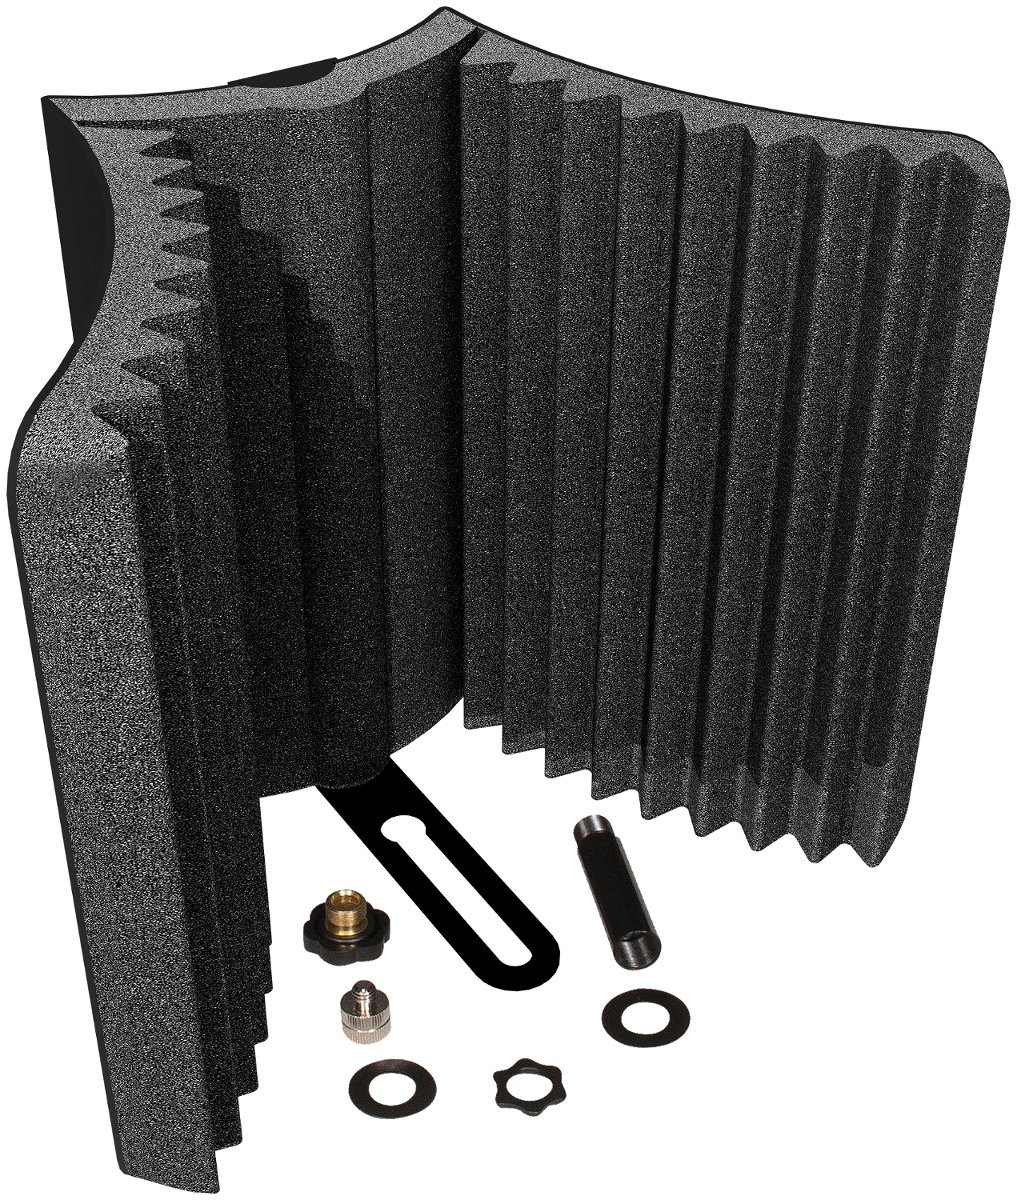 Auralex MudGuard v2 4-Pack (4) Microphone Shields with Hardware Mounting Kit MUDGUARD-V2-4PK